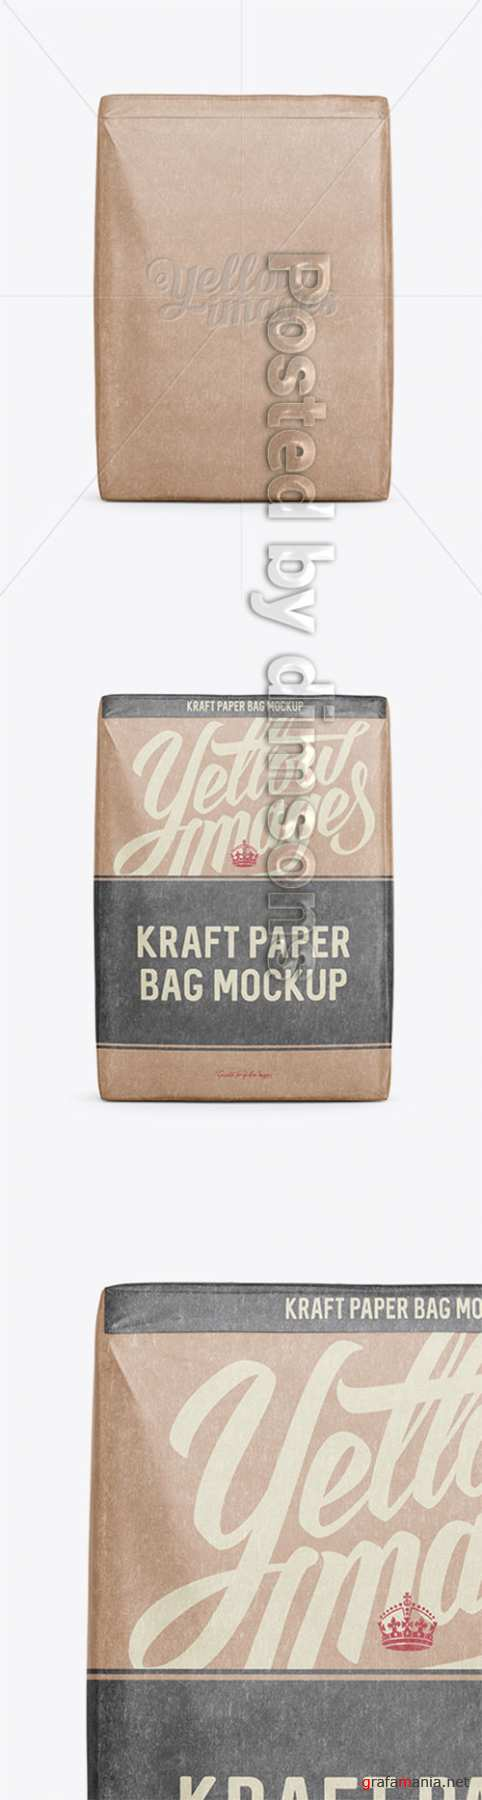 Kraft Paper Bag Mockup - Front View 15978 TIF